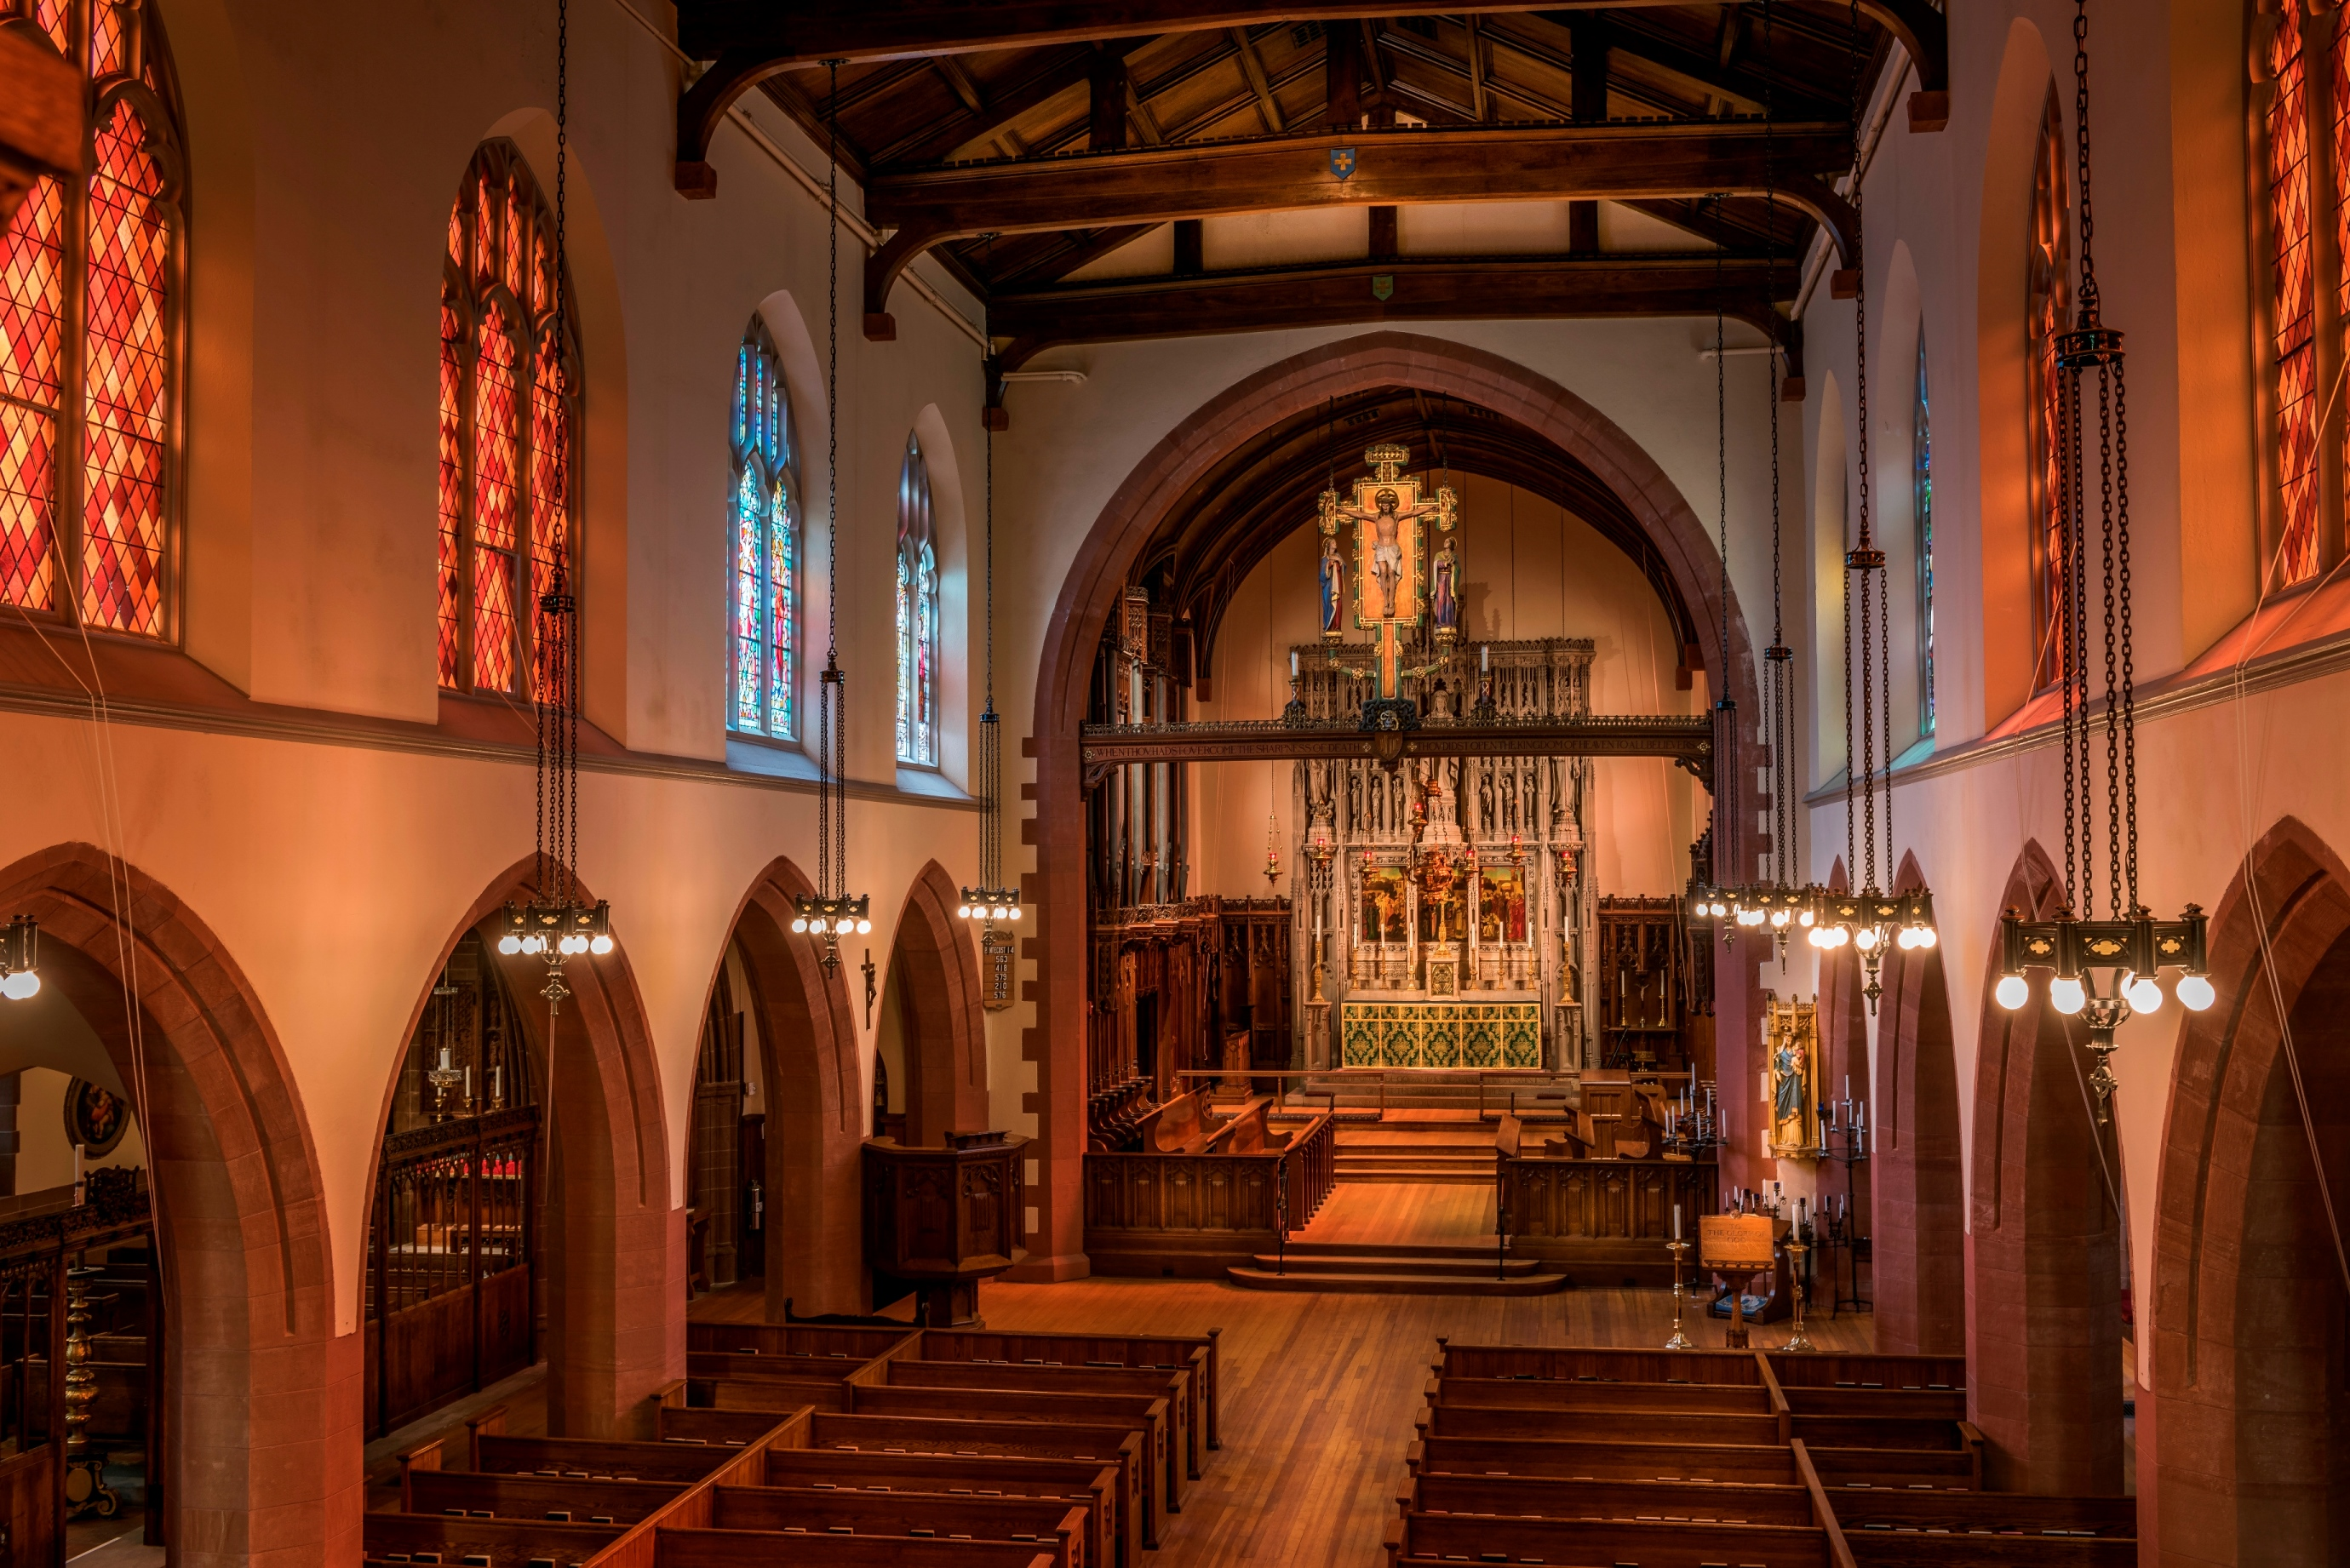 No43_All-Saints-Ashmont-interior-nave-restored-vanderwarker